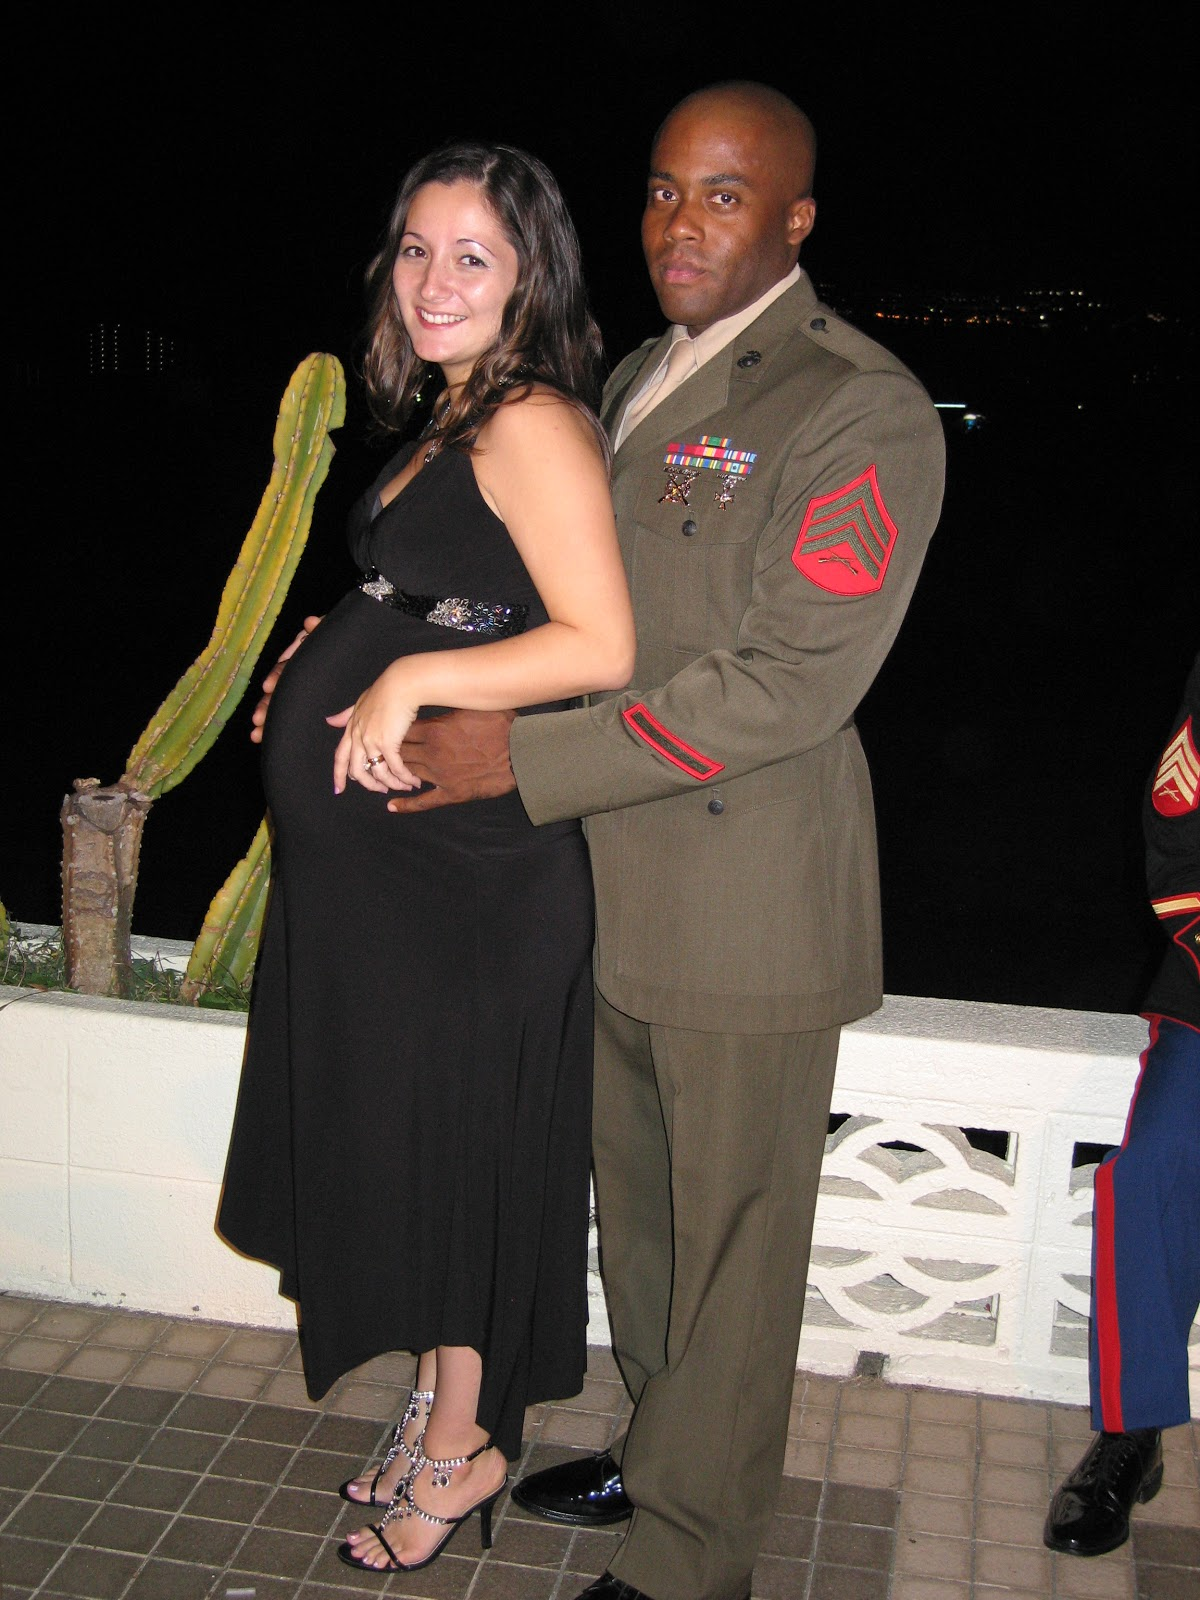 Marine Corps Ball pictures, past and present. - Je Ne Sais Quoi